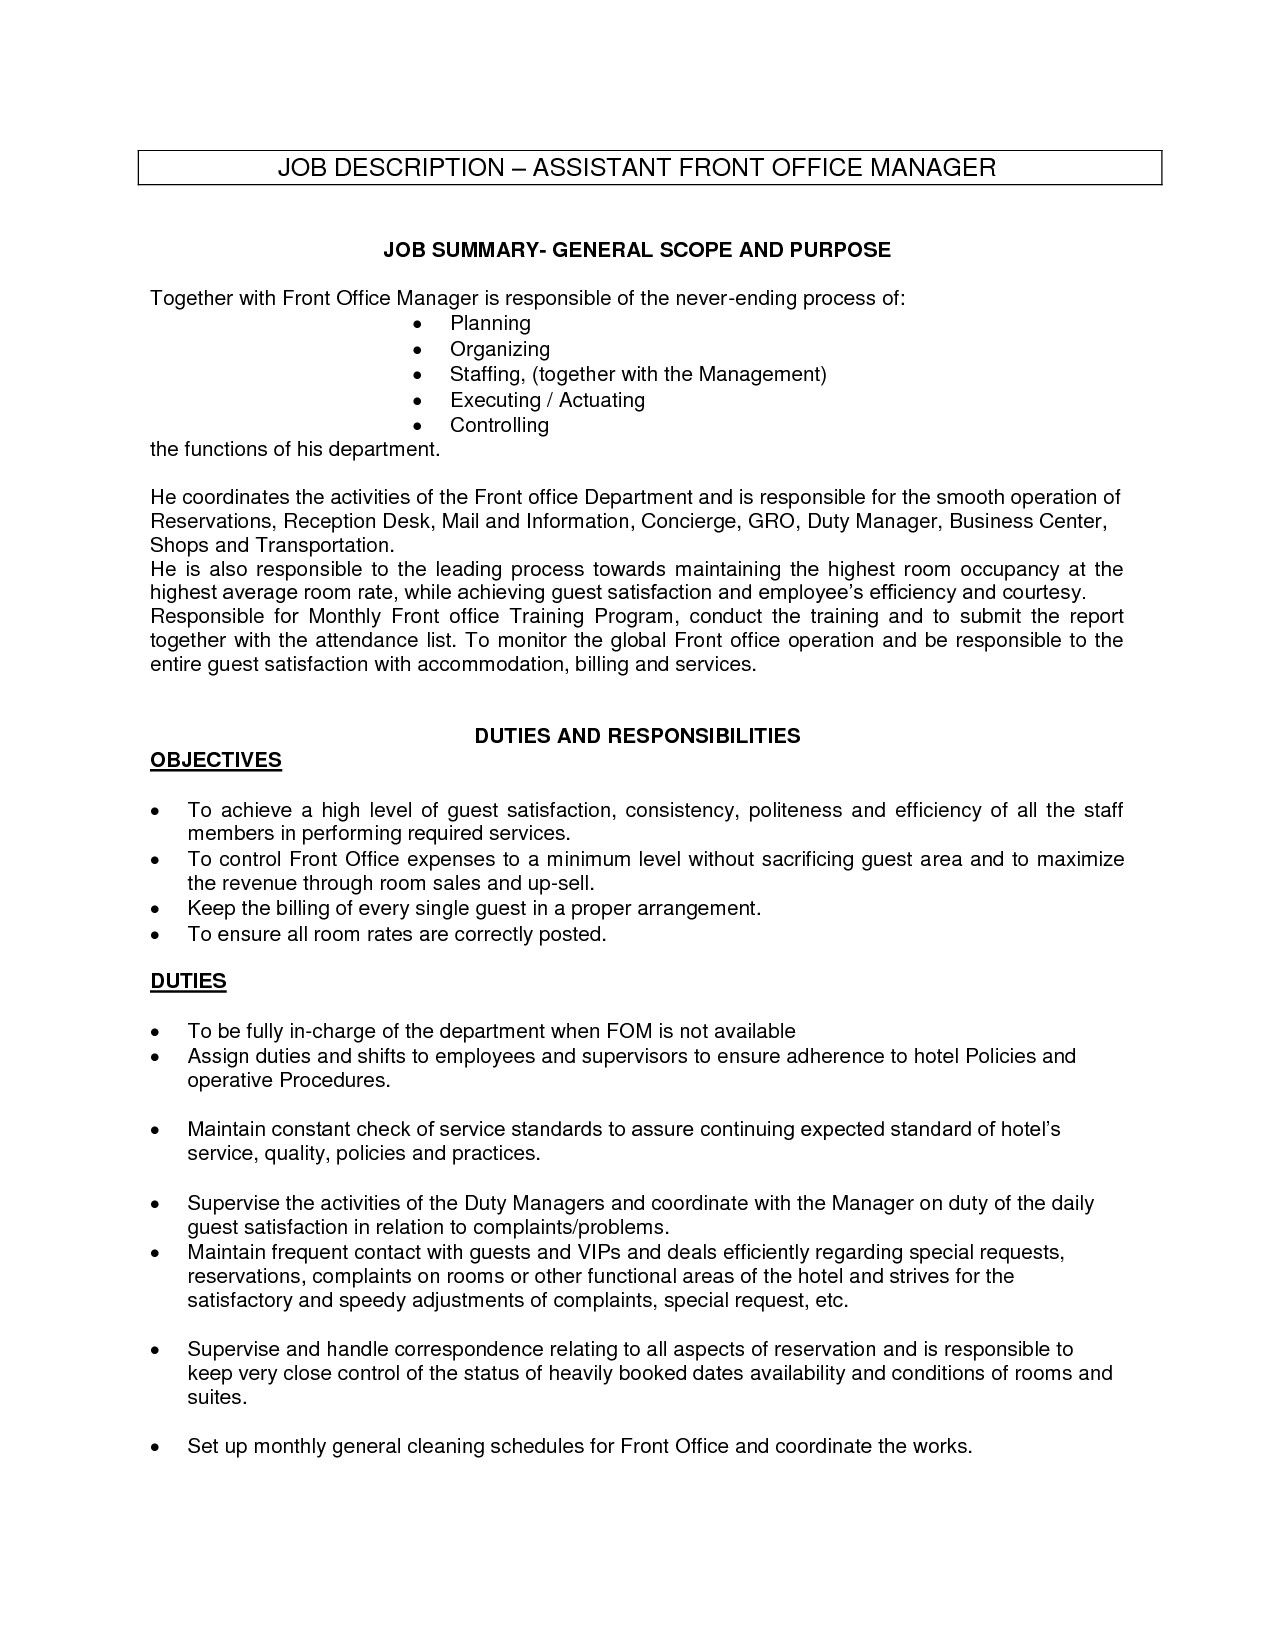 Administrative Assistant Duties Resume Cool And Elegant Medical Fice Assistant Job Des Office Assistant Job Description Receptionist Jobs Office Assistant Jobs